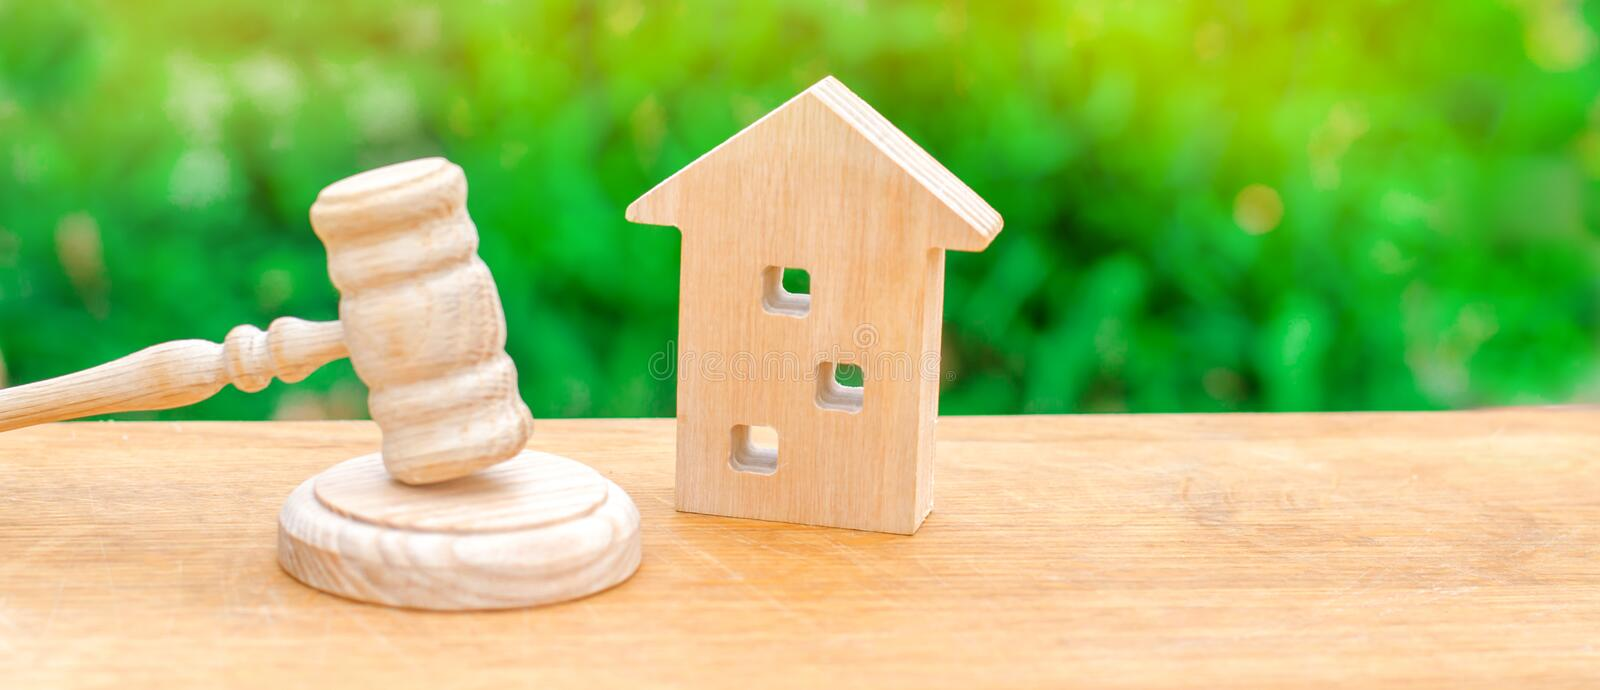 A miniature wooden house and a hammer of the judge. Auction to buy / sell a house. Forced eviction and confiscation. Clarification royalty free stock photos